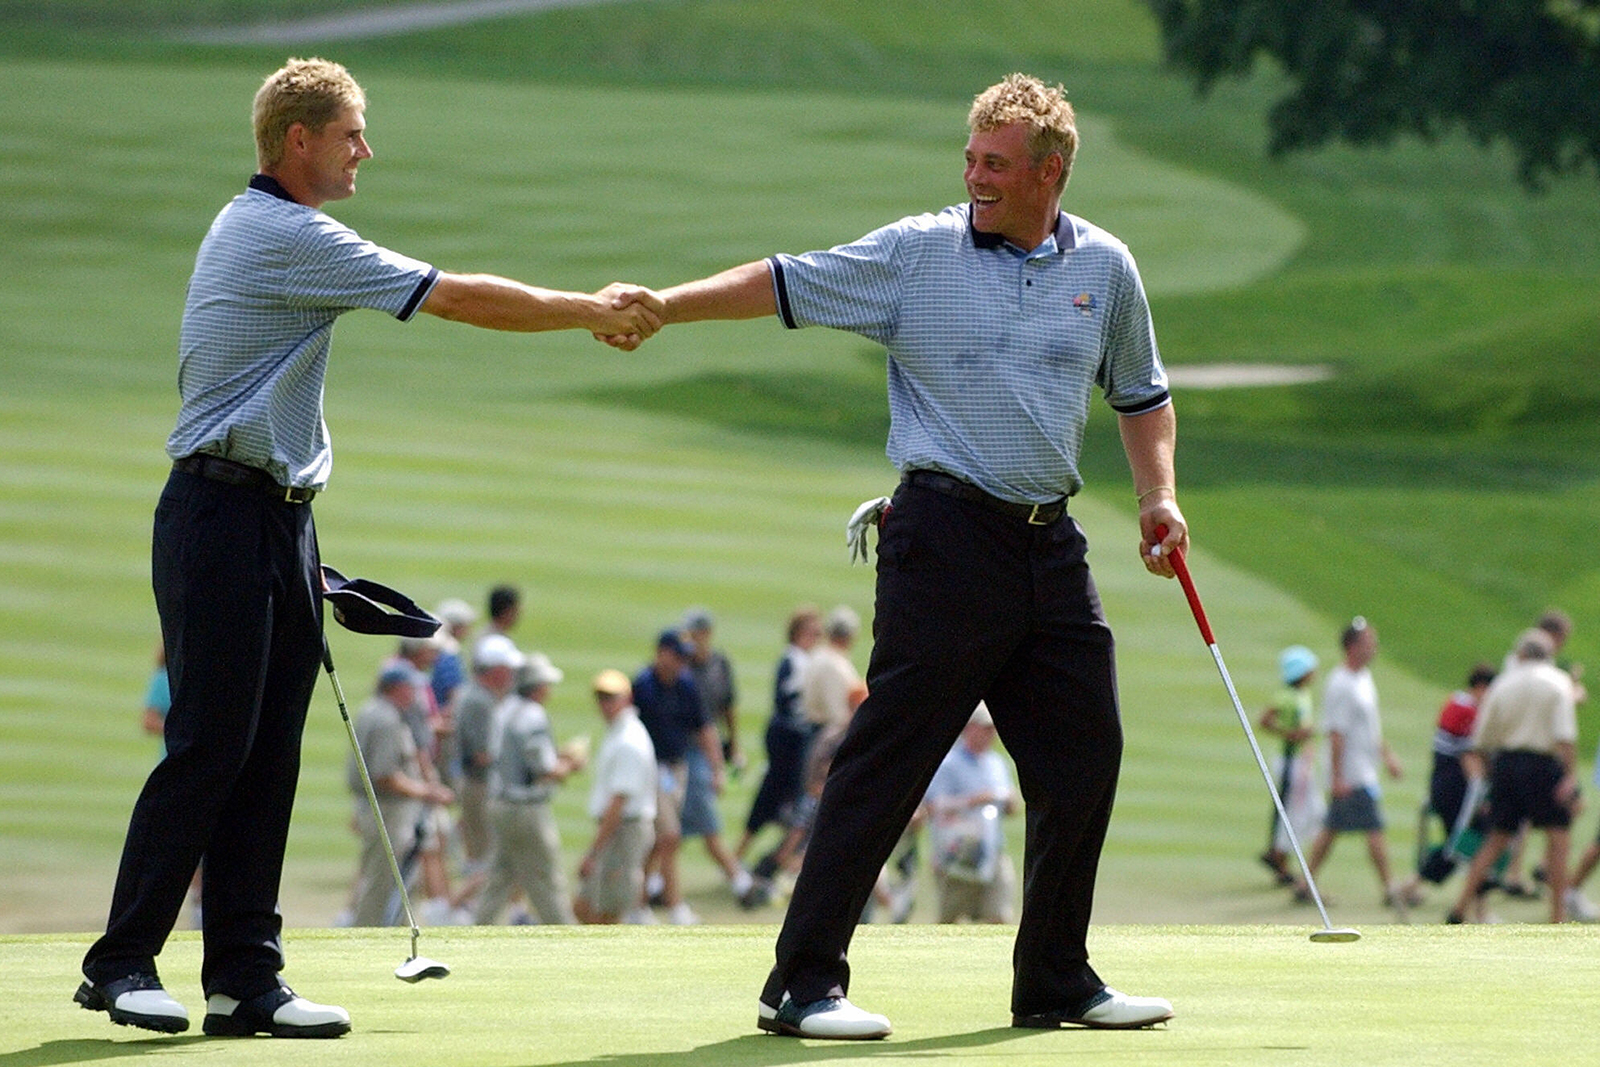 Clarke performed admirably at the 2004 Ryder Cup taking three-and-a-half points from five, as Europe registered a record 18.5-9.5 victory over the USA at Oakland Hills (Photo: Getty Images)